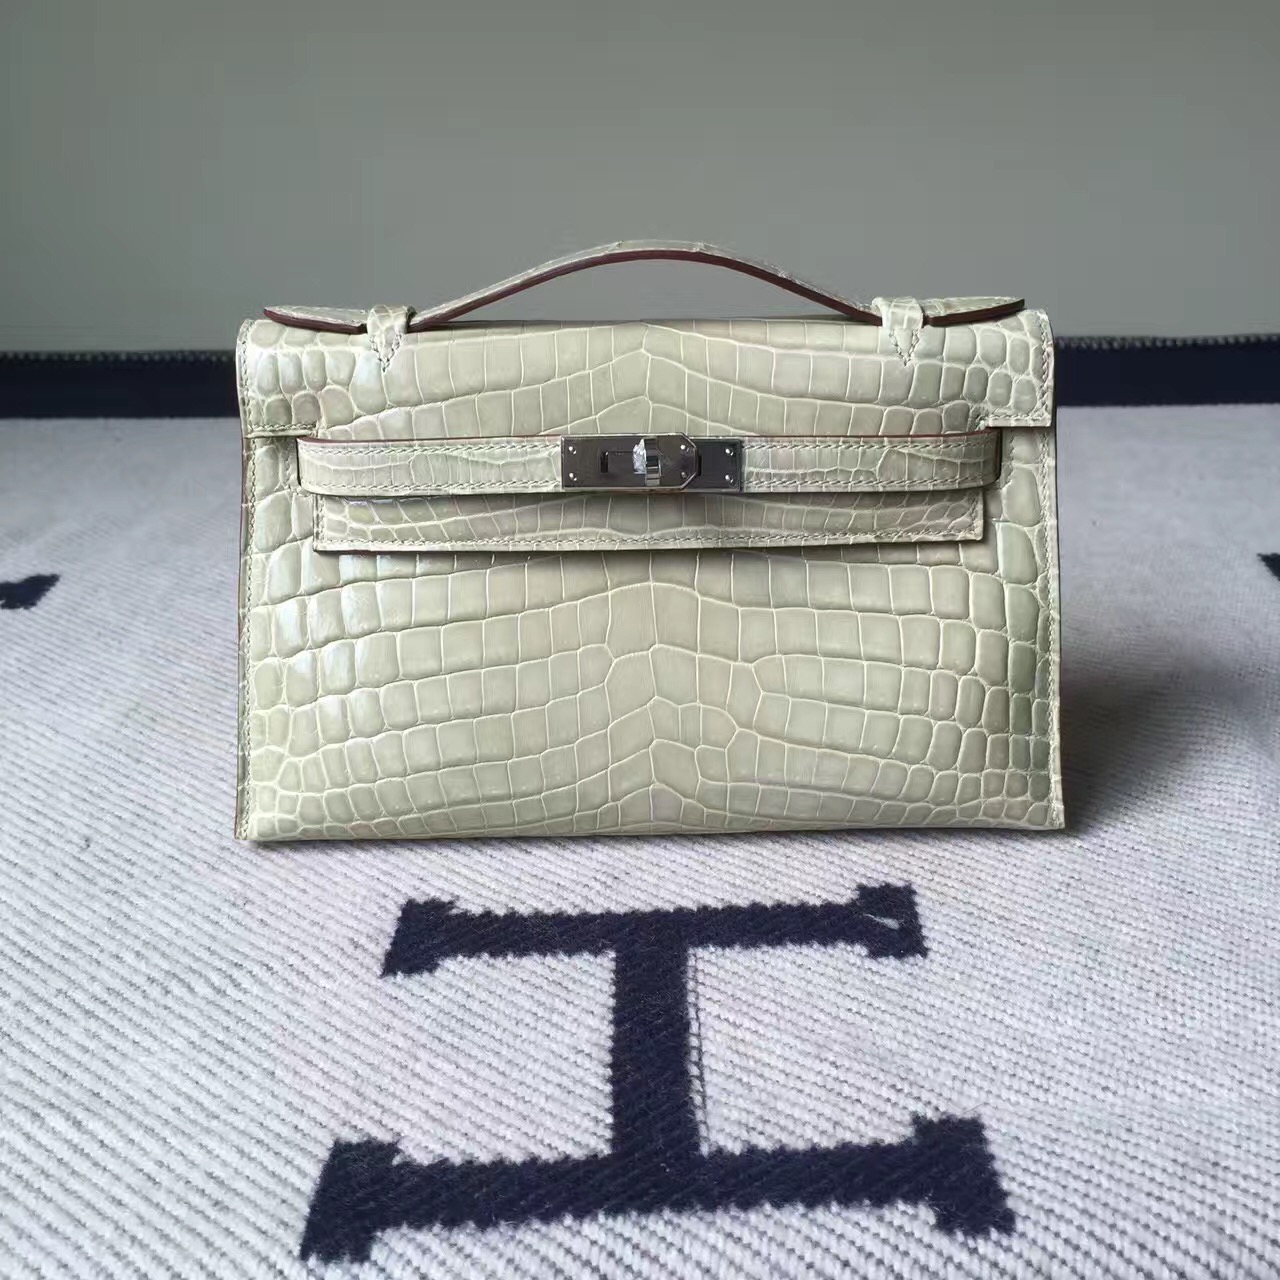 Wholesale Hermes Minikelly Clutch Bag 22cm 8L Beton White Crocodile Leather